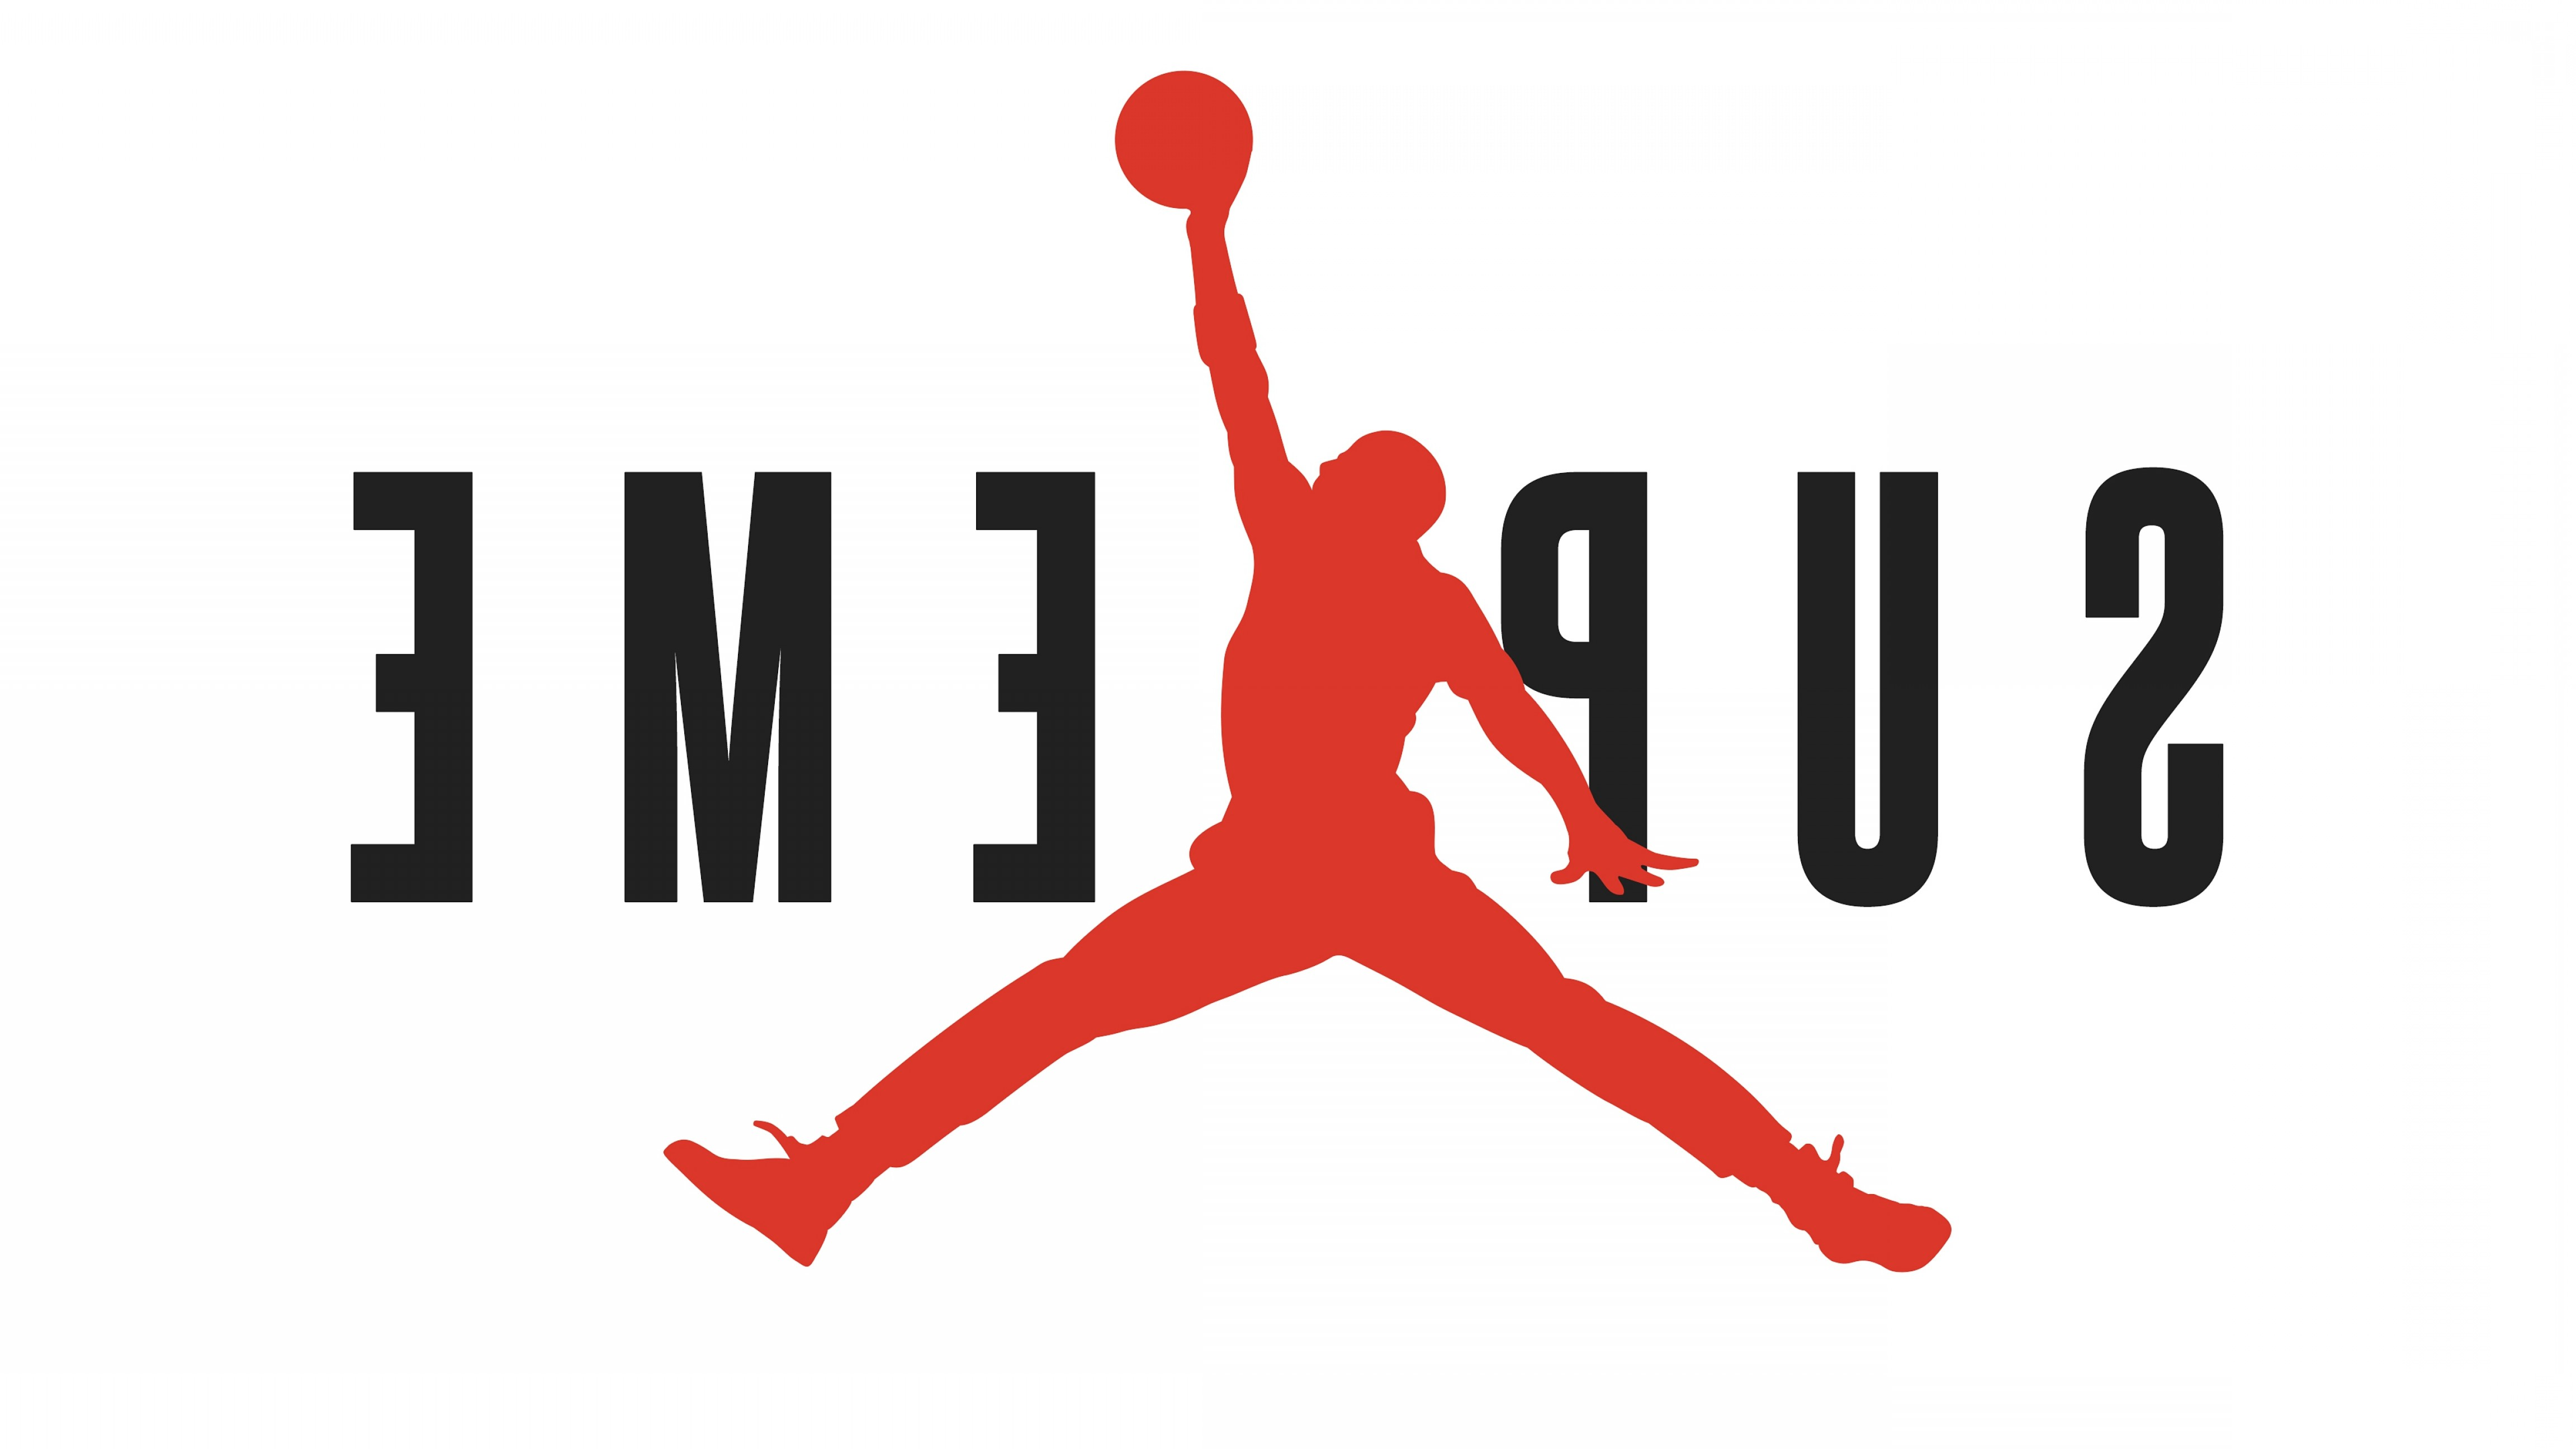 Download Free Air Jordan Shoes Wallpapers.